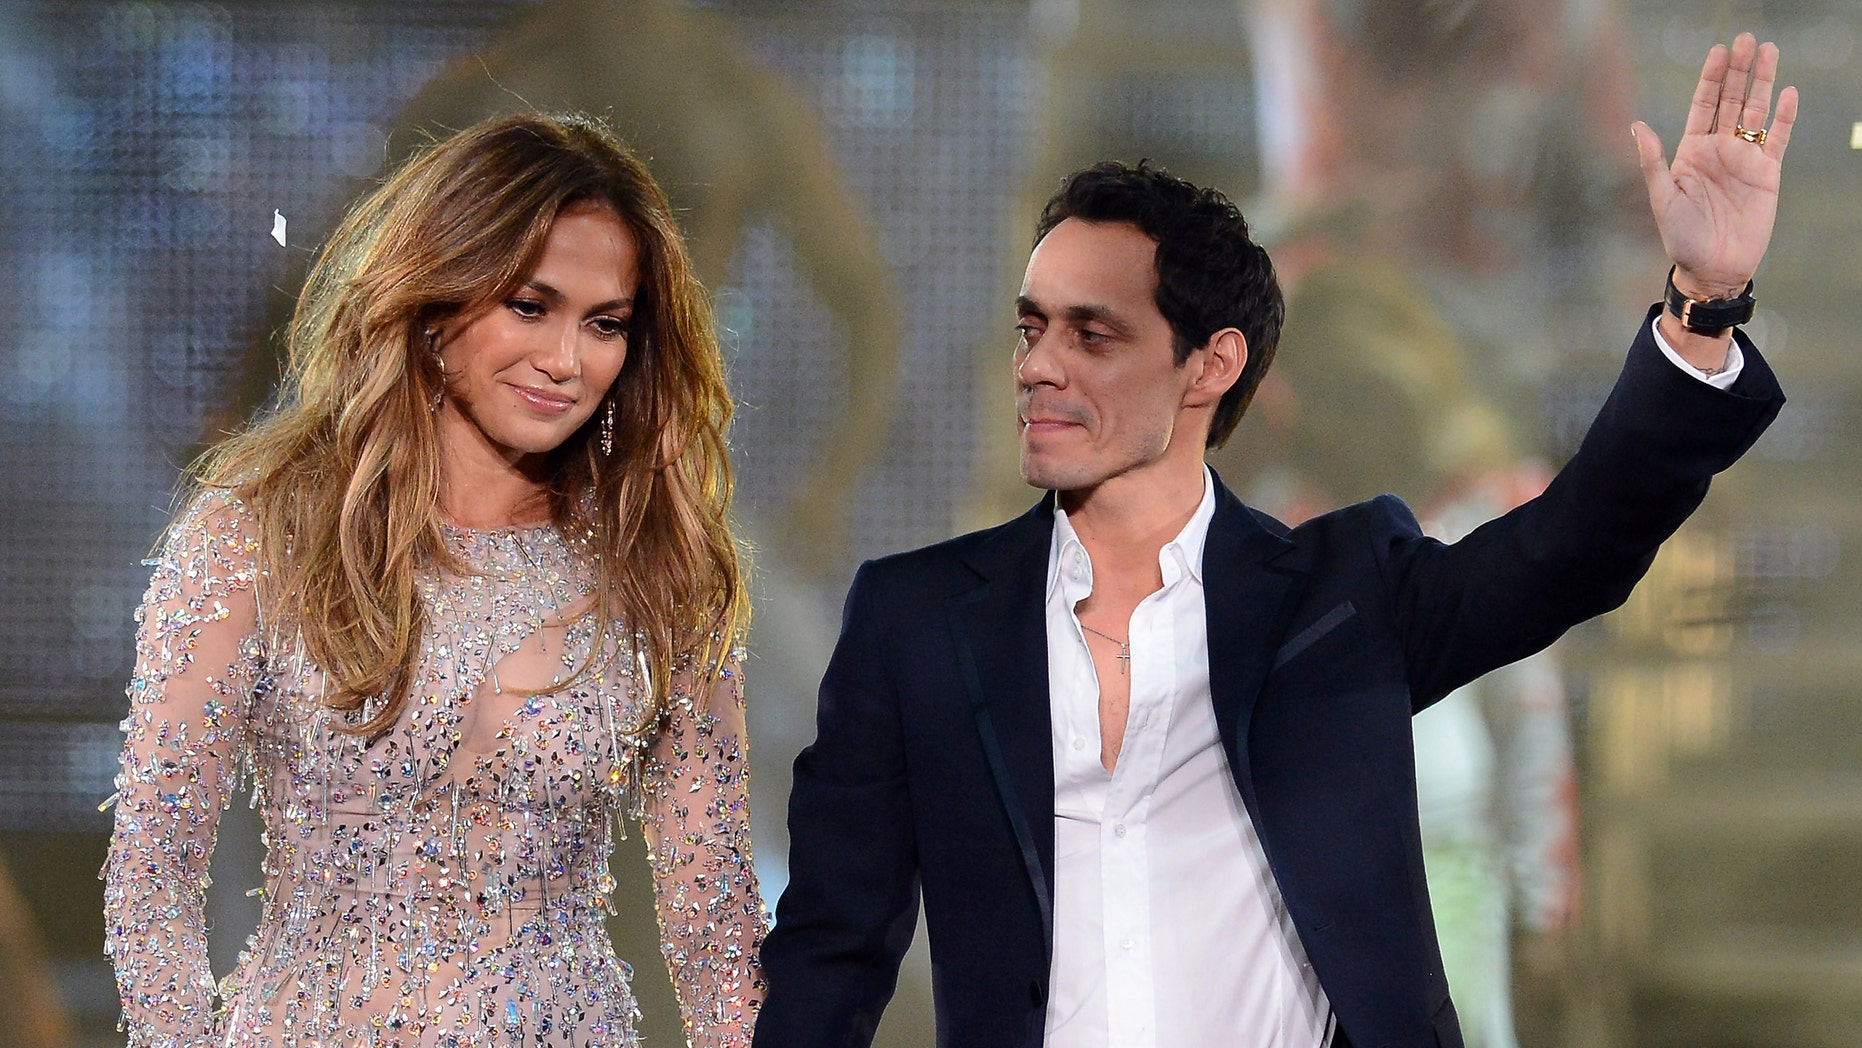 LAS VEGAS, NV - MAY 26:  Singer/actress Jennifer Lopez (L) and singer Marc Anthony appear during the finale of the Q'Viva! The Chosen Live show at the Mandalay Bay Events Center on May 26, 2012 in Las Vegas, Nevada.  (Photo by Ethan Miller/Getty Images)